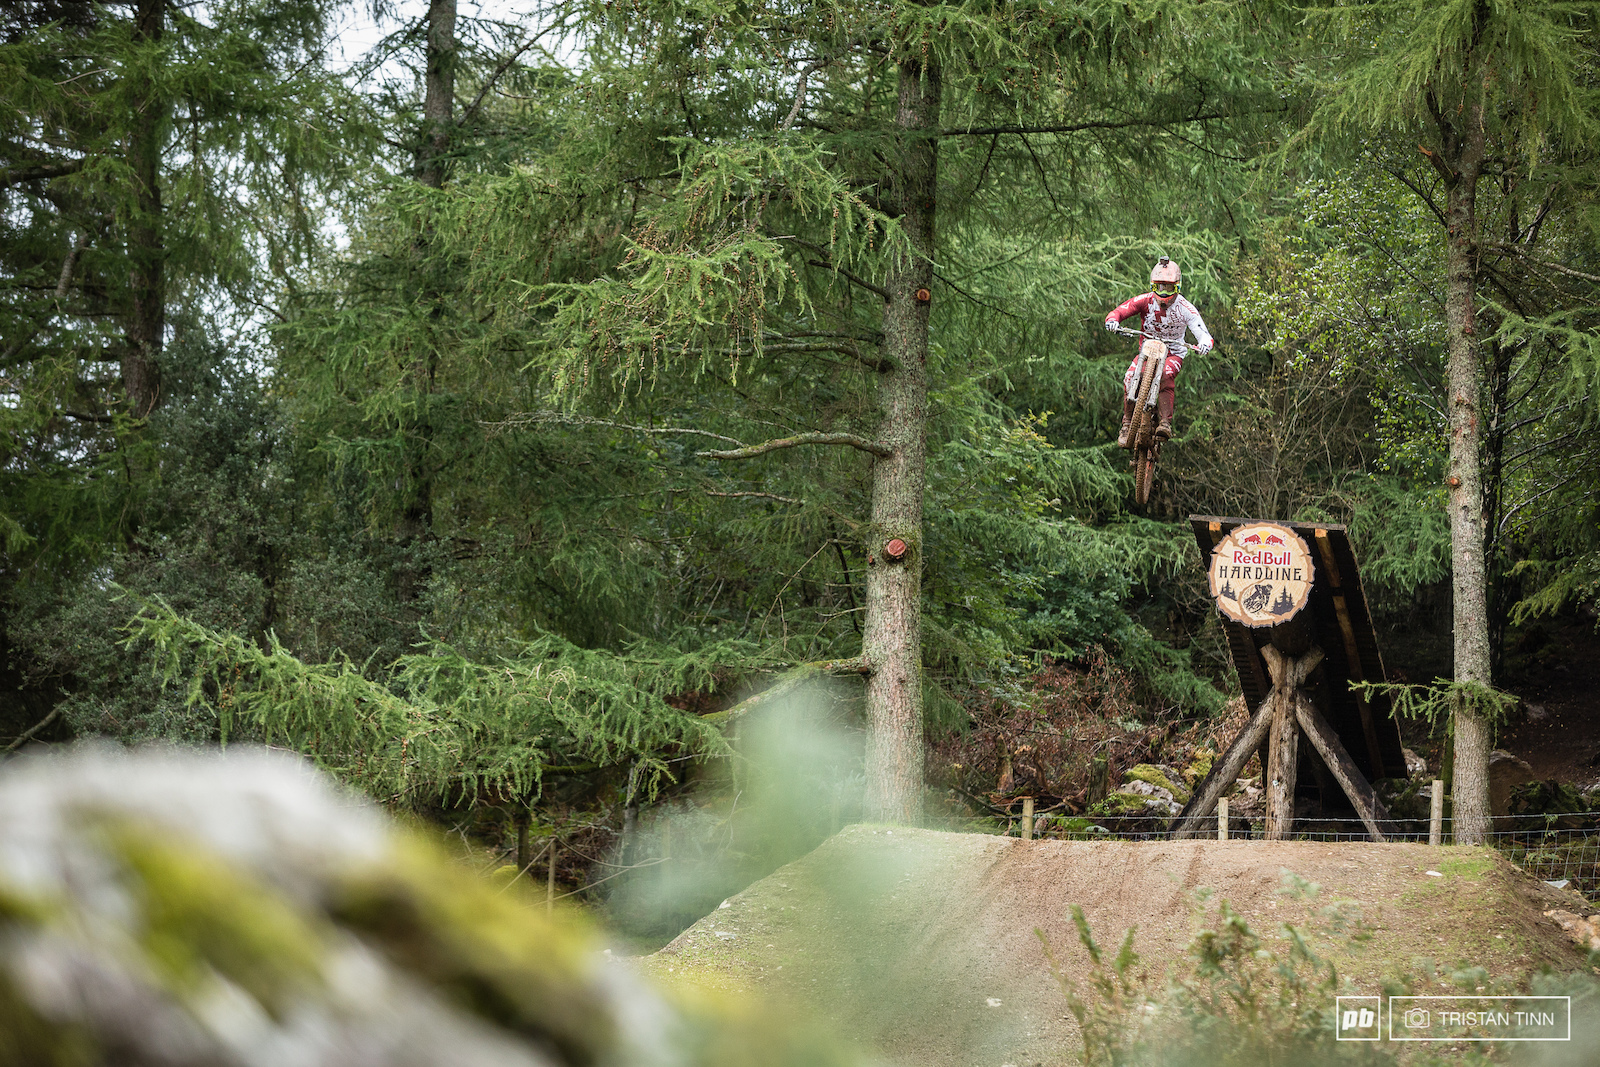 Ga tan Vig put himself out of rhythm on the last 3 jumps with a big pull out of the woods